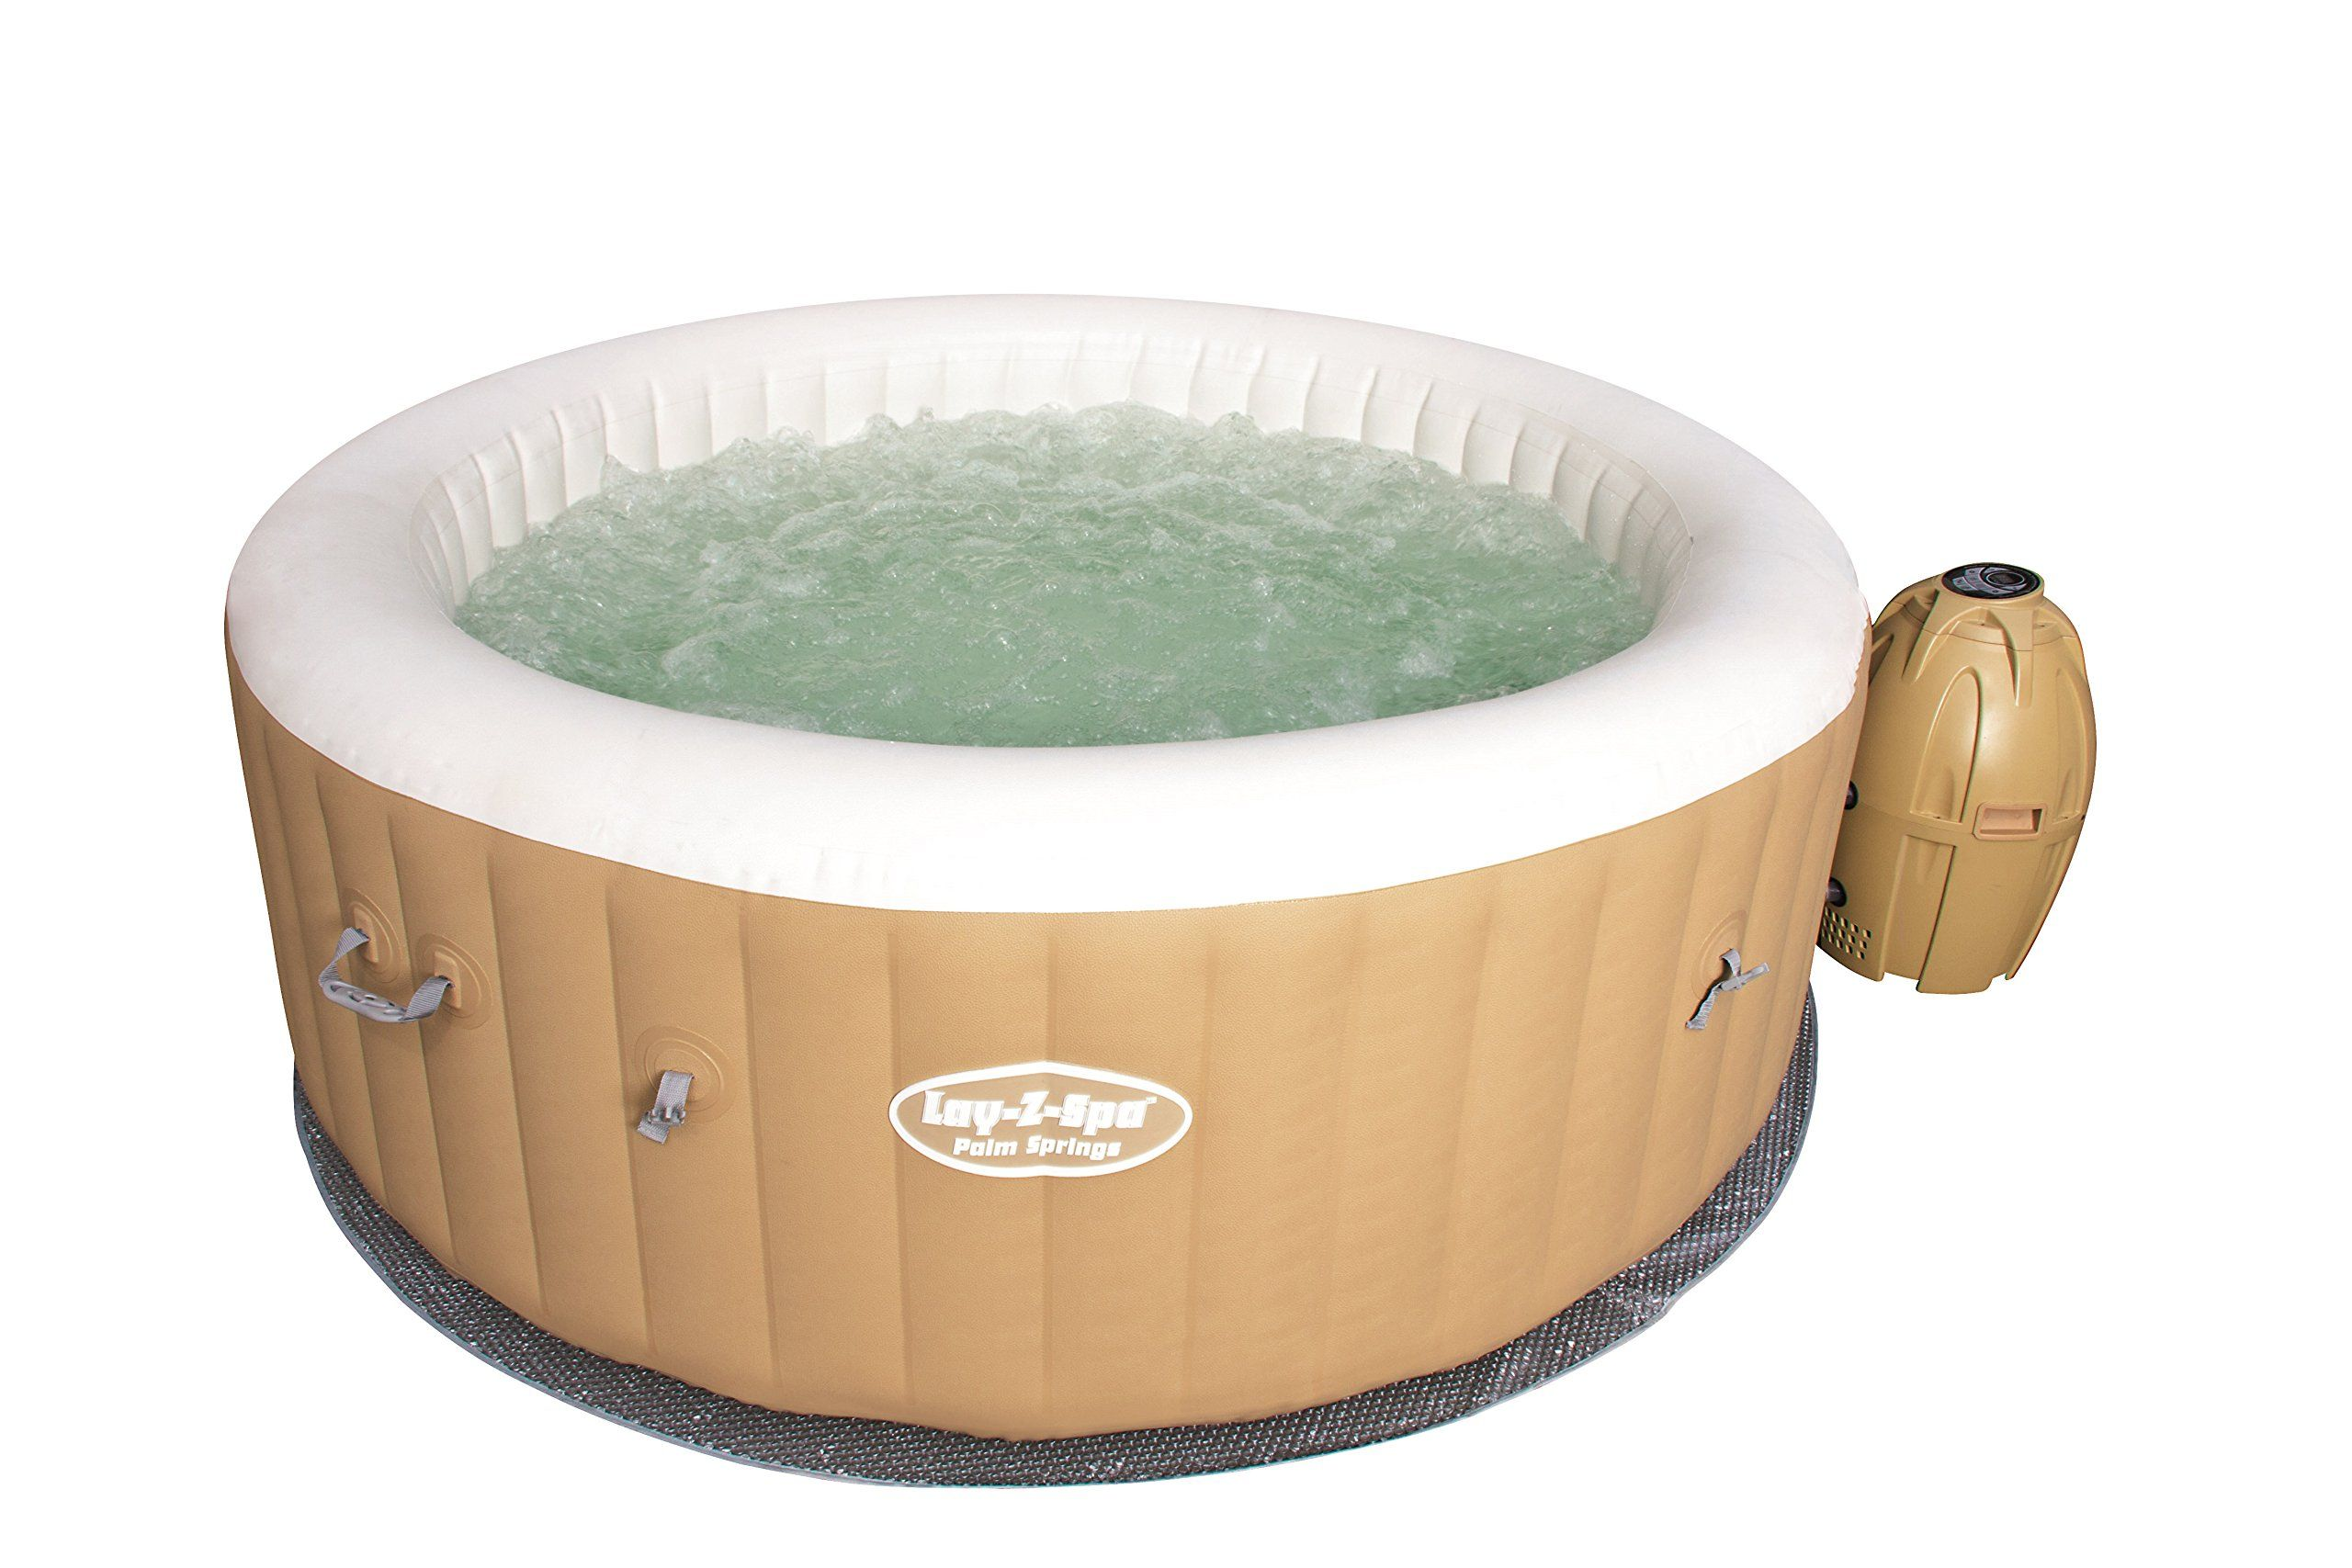 tubs center spring redlands limelight lifestyle service supply hot pulse pearl pool coastalgray store and tub spa amazon